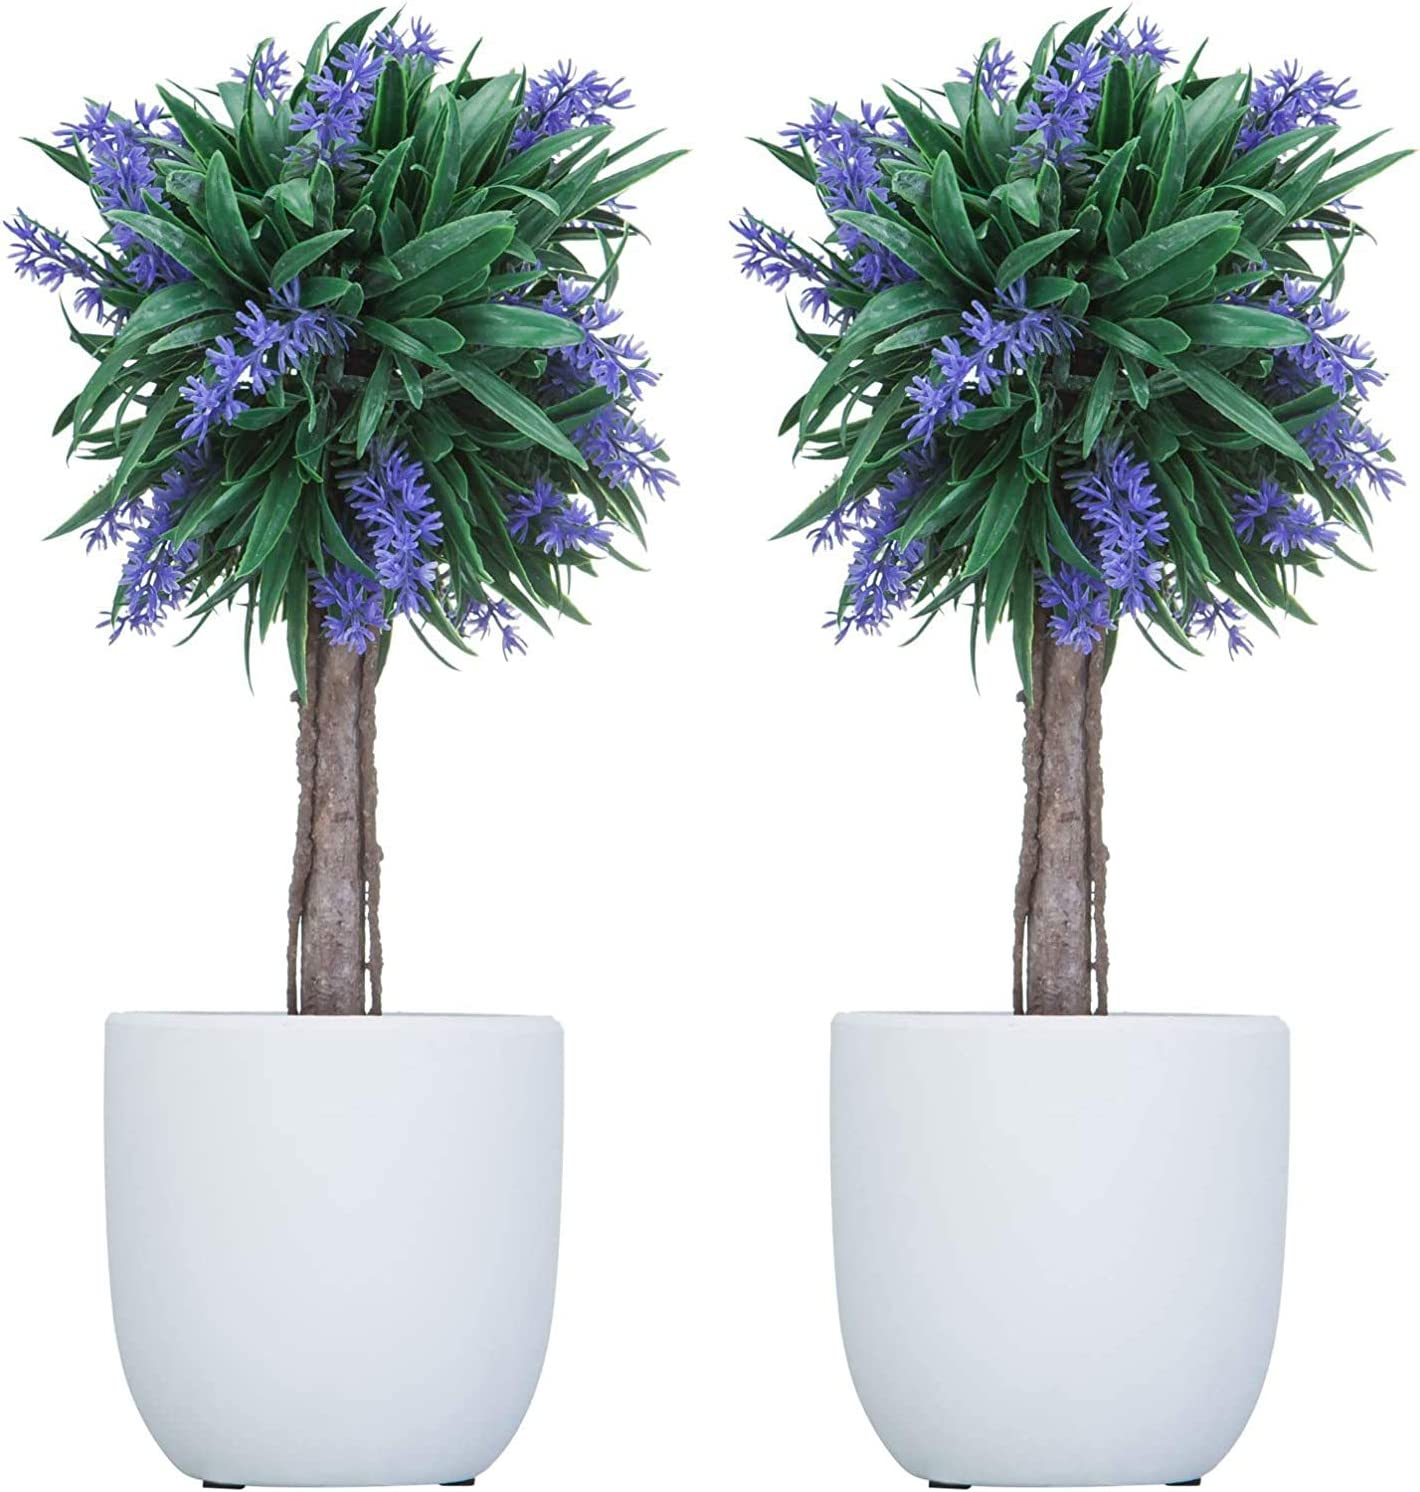 Decorative New York Mall Lavender Plants Artificial - Limited time sale Ba Fake Flowers